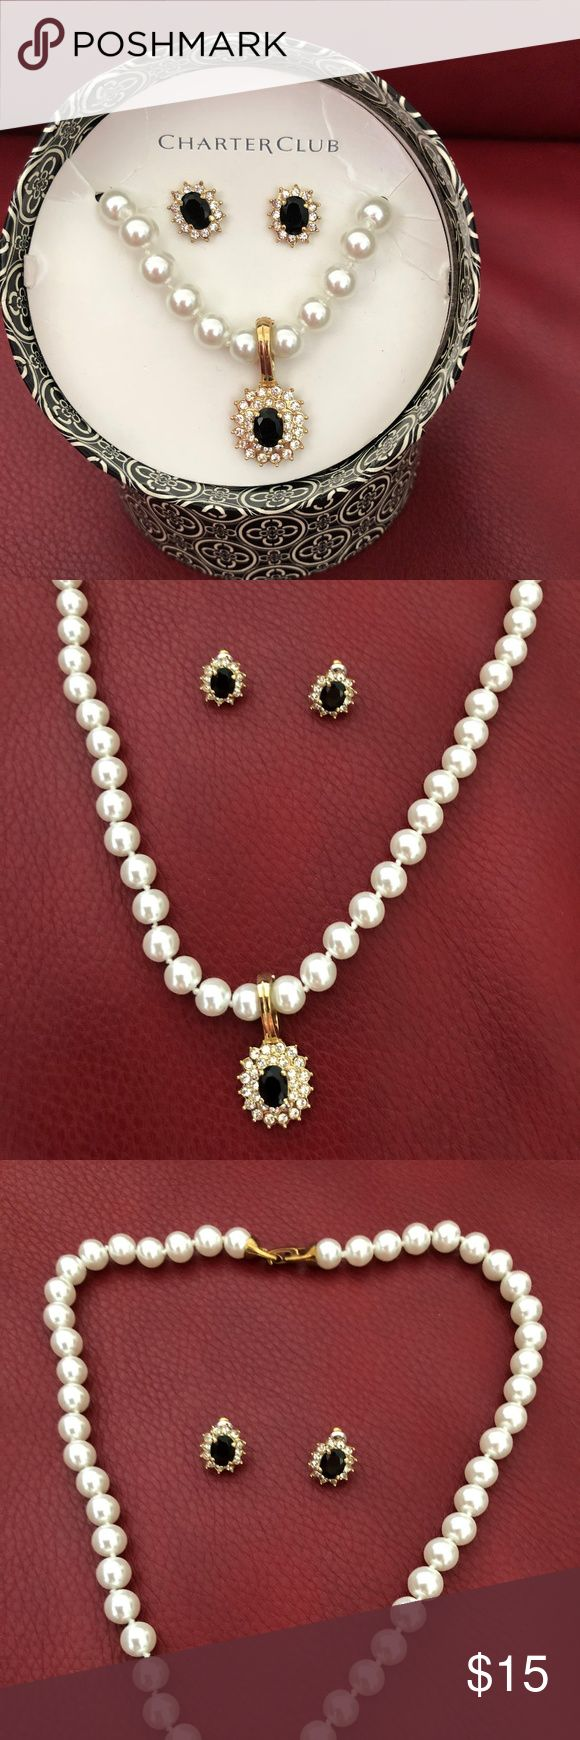 Charter Club Pendant Pearl Necklace with Earrings Charter Club Pearl Necklace with Black stone encased in diamond colored stones with matching earrings  Necklace measures 8inches in length. Excellent pre loved condition.  Packaged in a round designer box with fitted lid. Charter Club Jewelry Necklaces